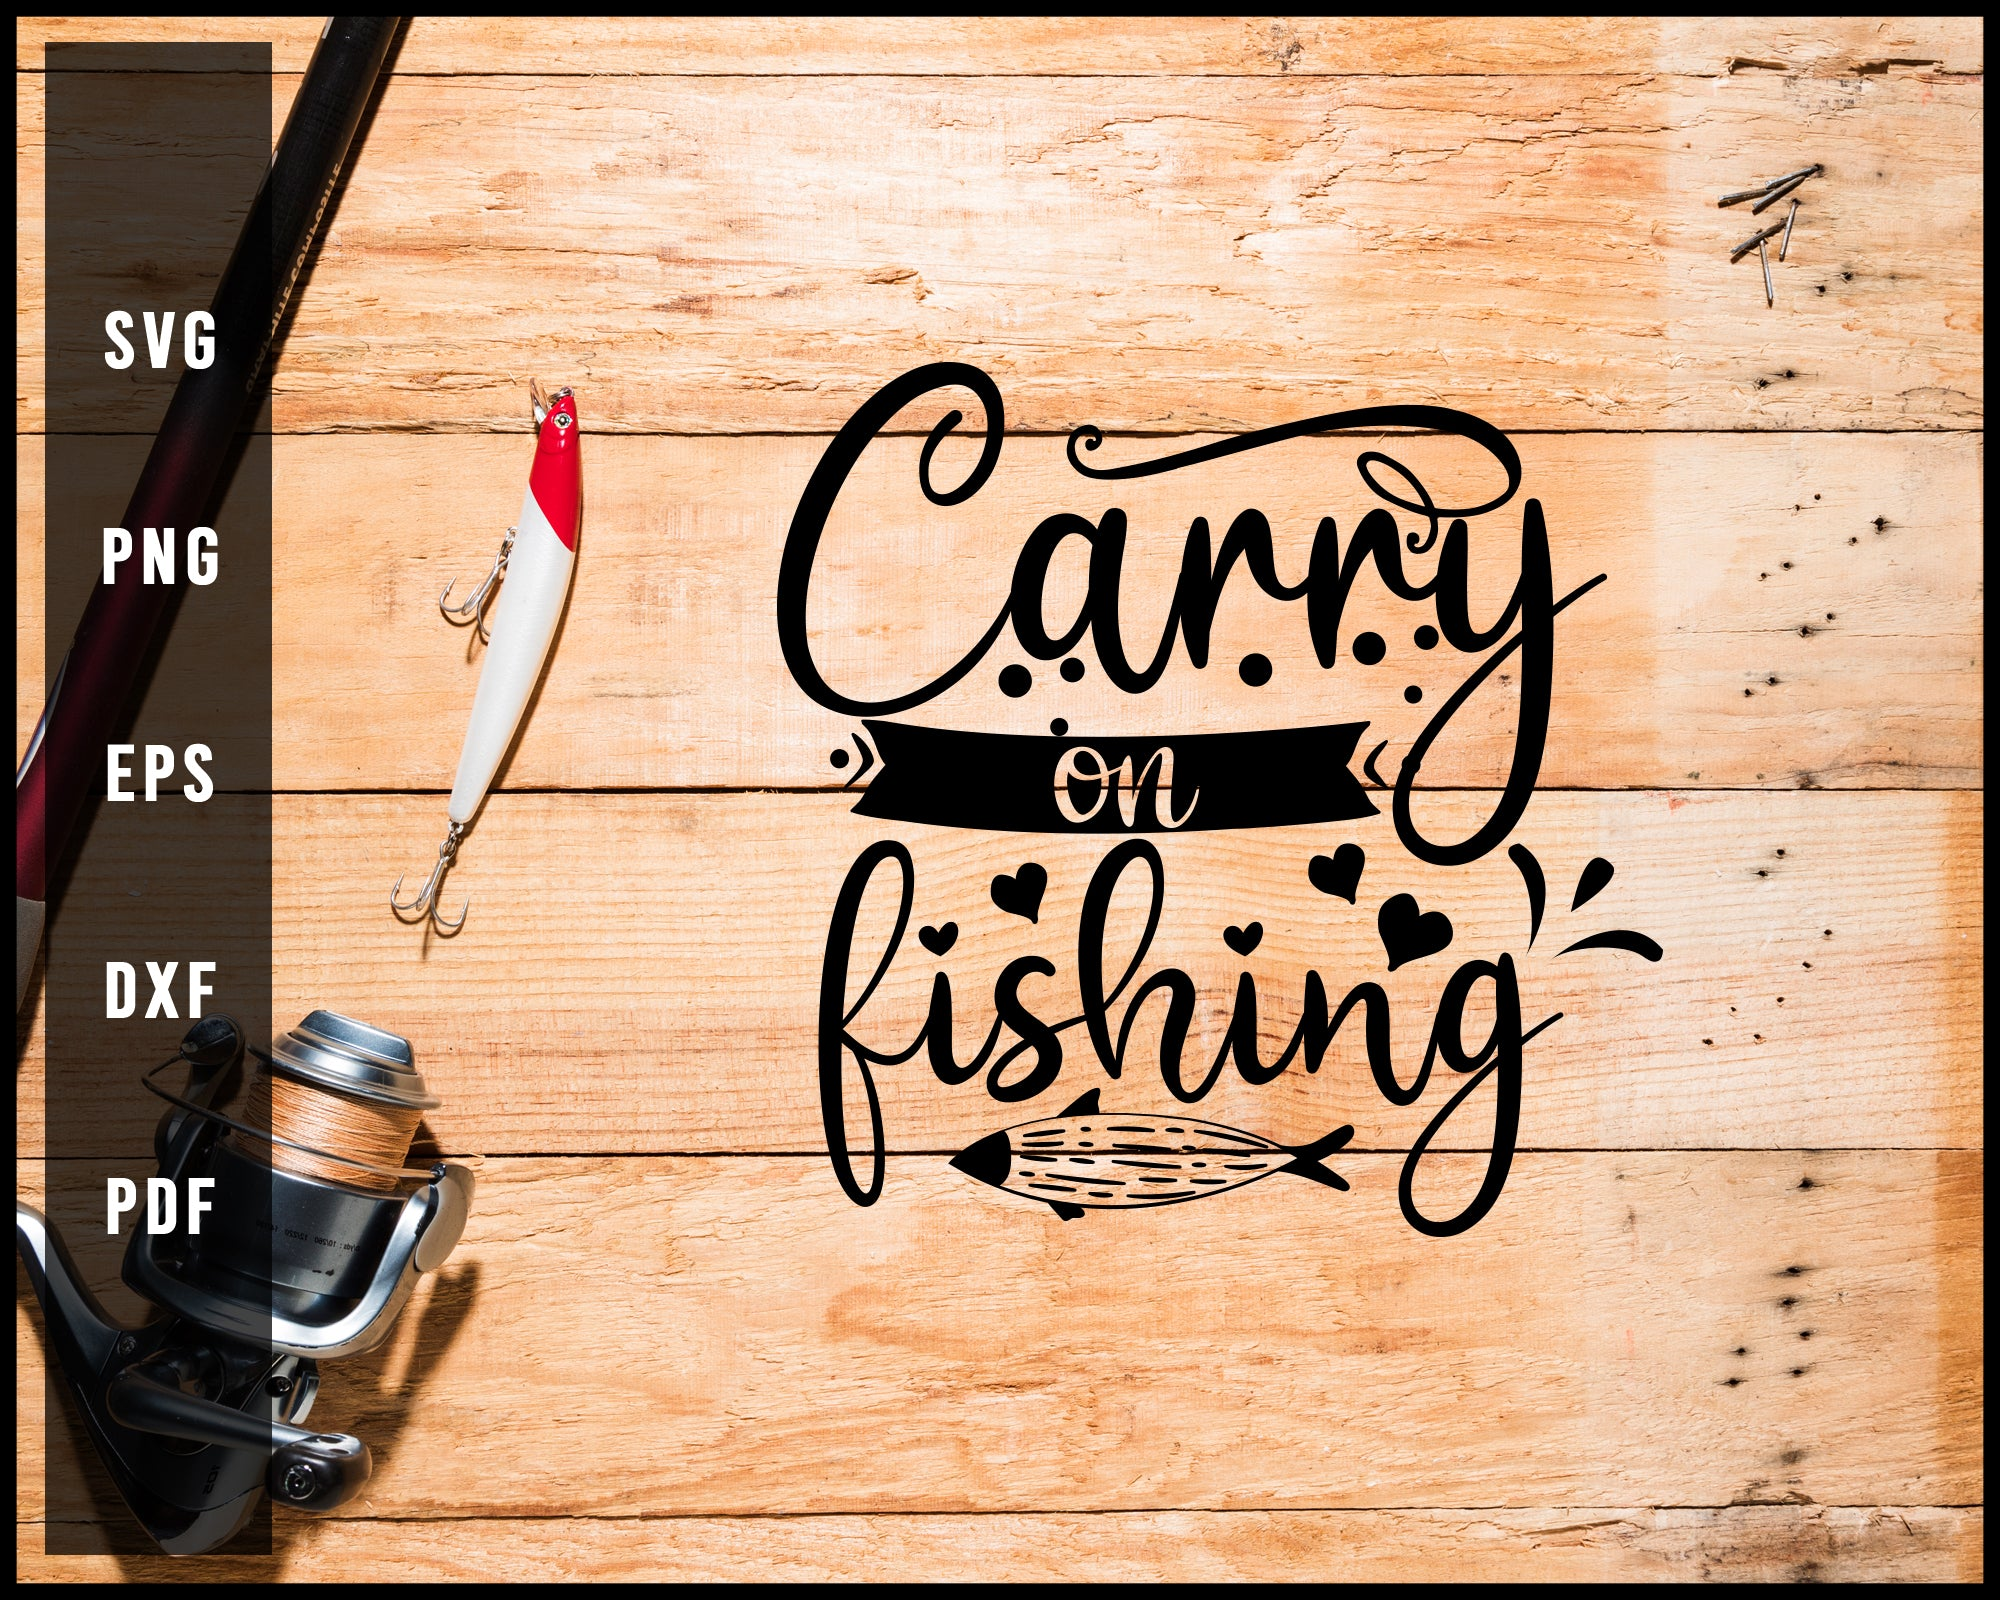 Carry On Fishing svg png Silhouette Designs For Cricut And Printable Files